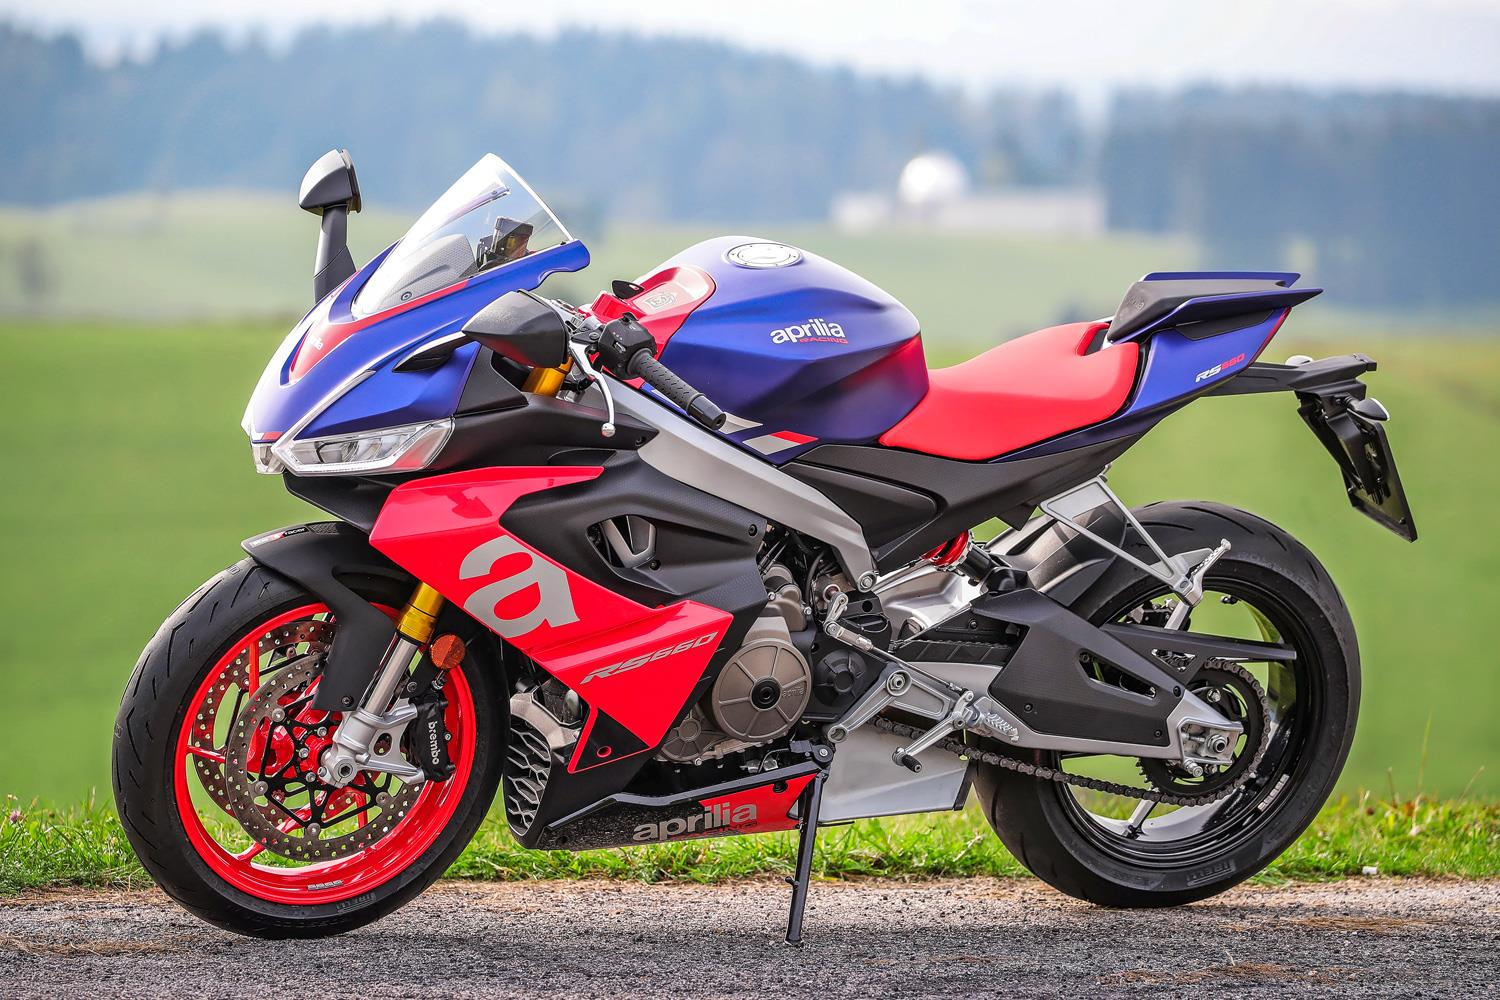 Half a superbike, twice the fun: your in-depth look at Aprilia's new 660 motor